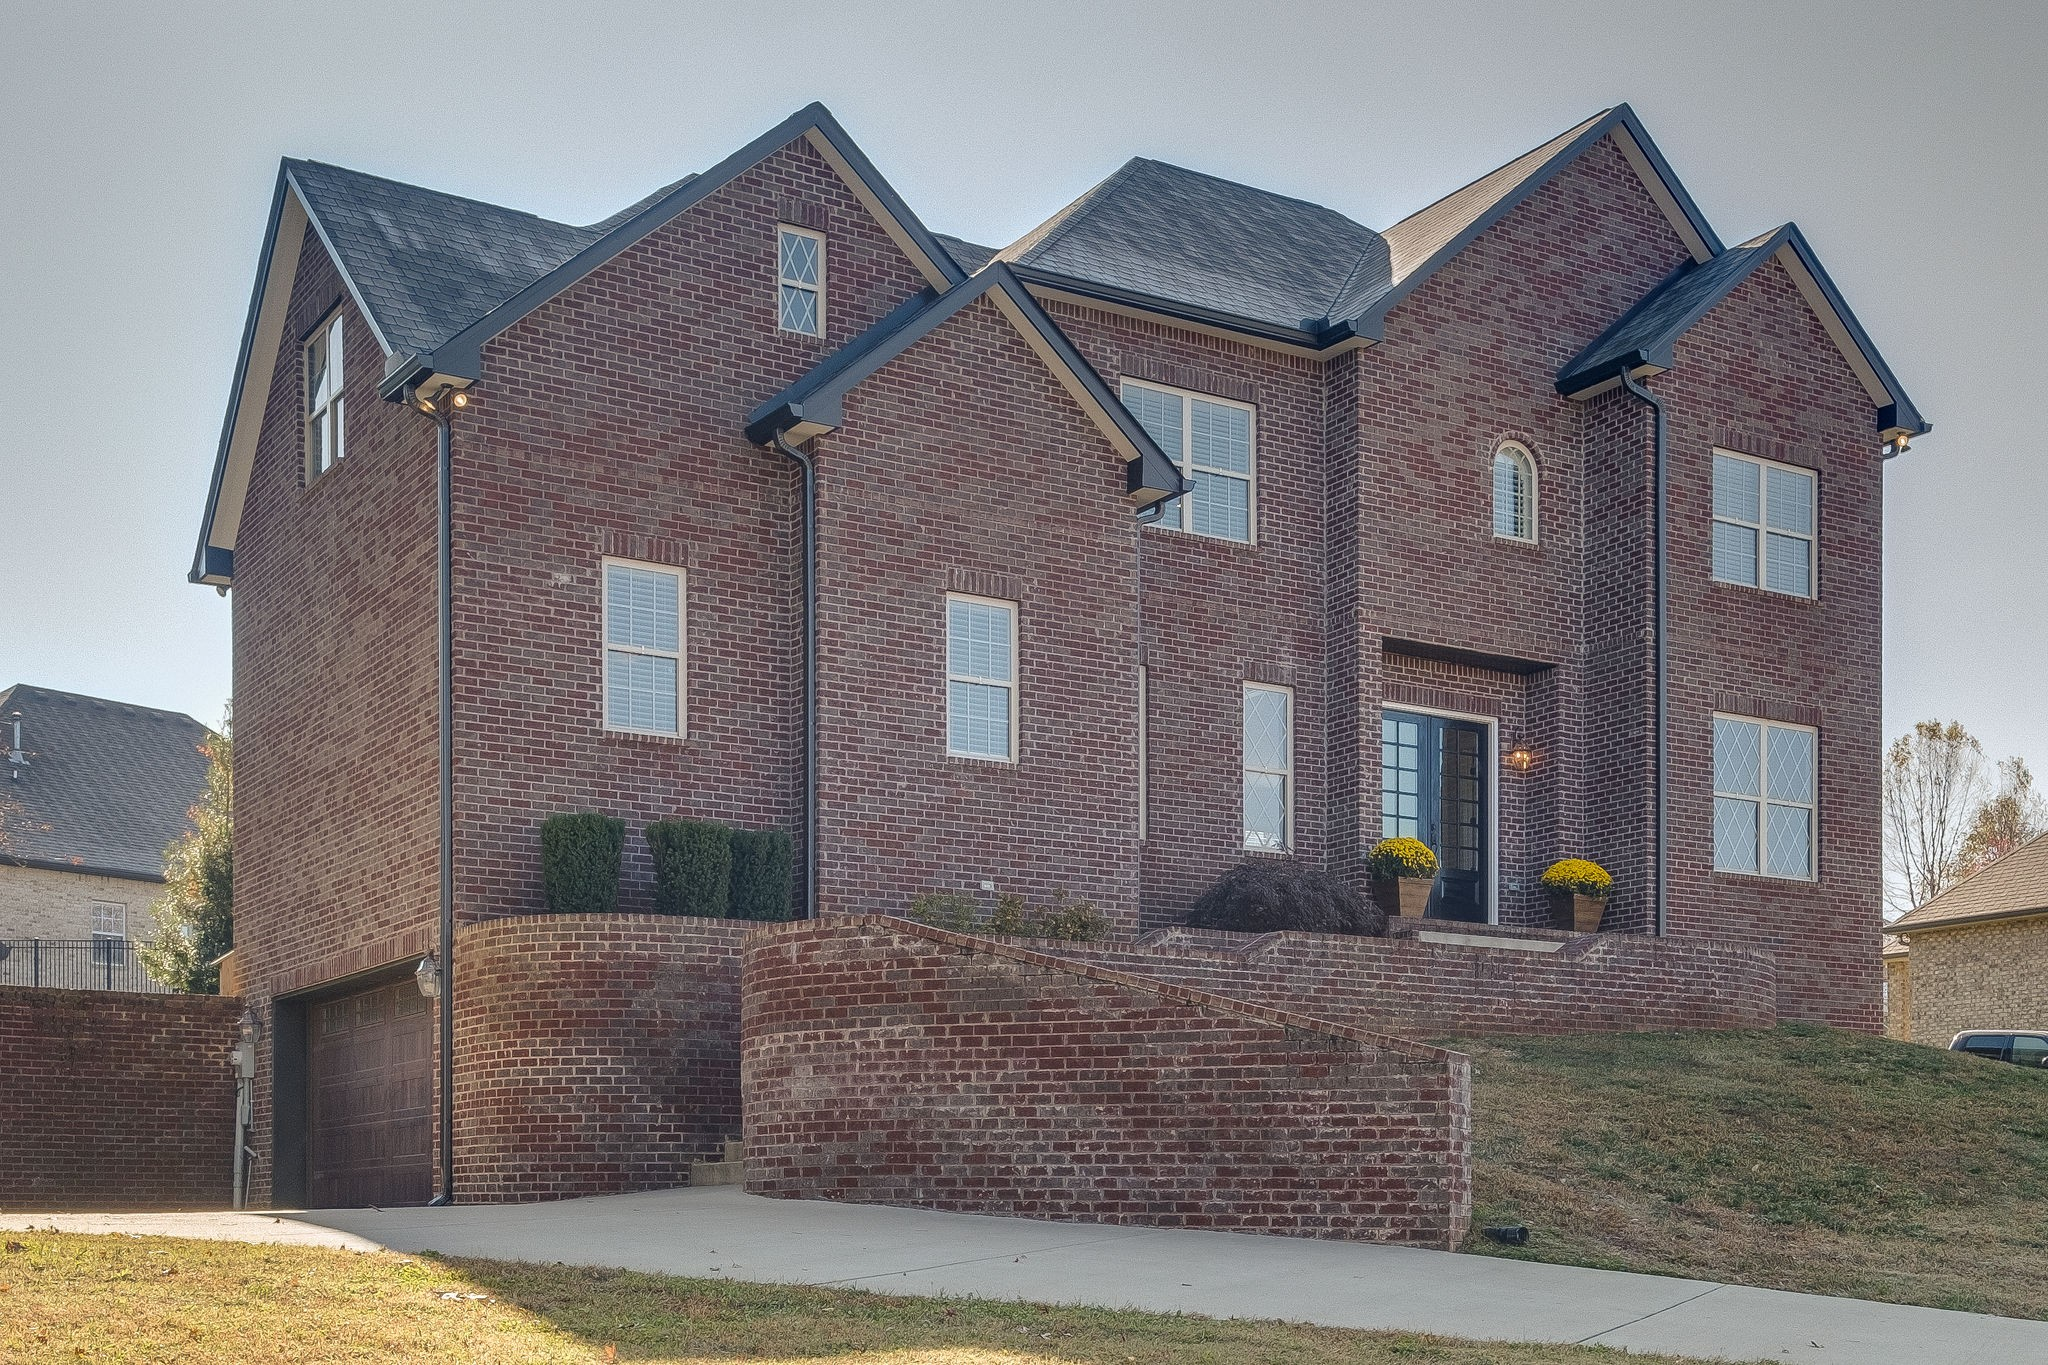 3025 Settlers Ct, Greenbrier, TN 37073 - Greenbrier, TN real estate listing